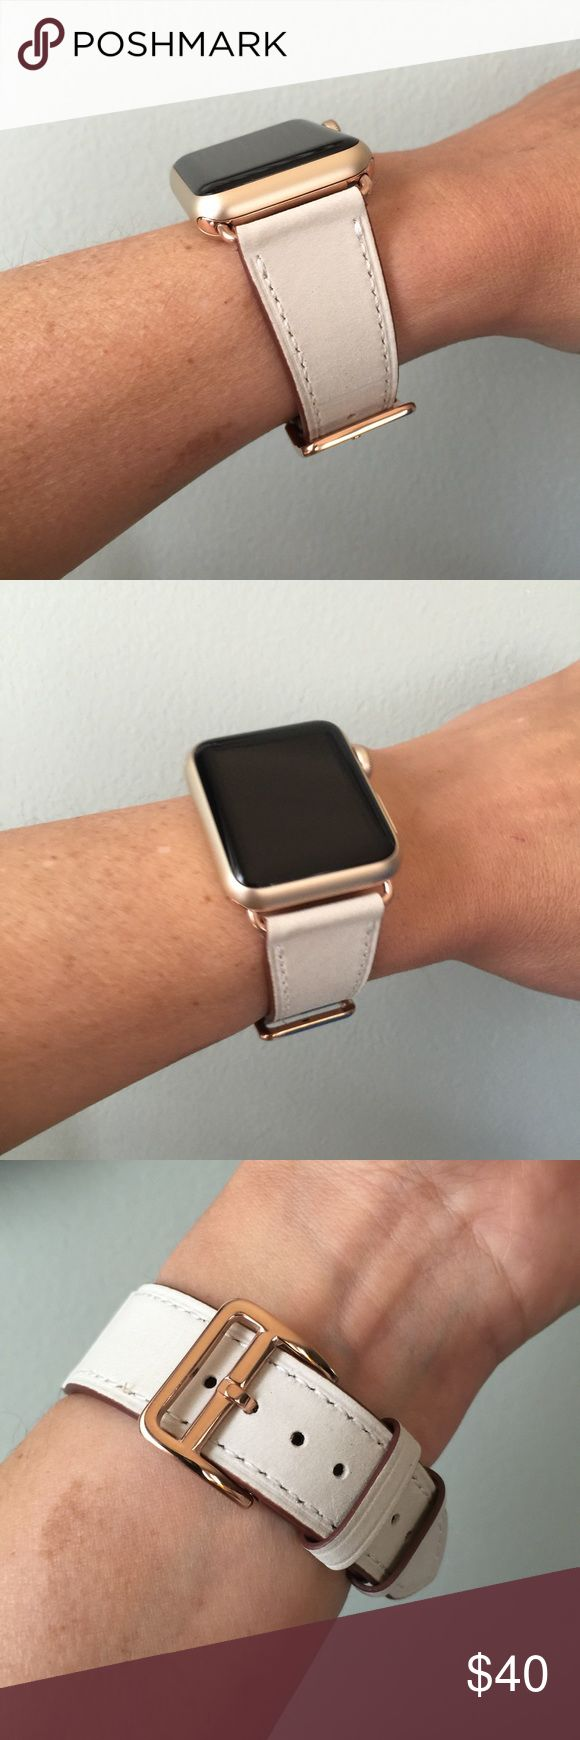 ROSE GOLD Beige Leather Apple Watch Band  Beige/Cream Leather band, it comes with 38mm or 42mm adapters. Please select your size when you purchase. The adapters fit the Apple Watch I, 2 and Sport.   I have other band colors, hardware colors and styles in my closet. Check them out!   I offer 15% off if you buy two or more! Please add BOTH items to the bundle for the discount to automatically apply.    Only the band is for sale; does not include the watch. ⌚️ Other